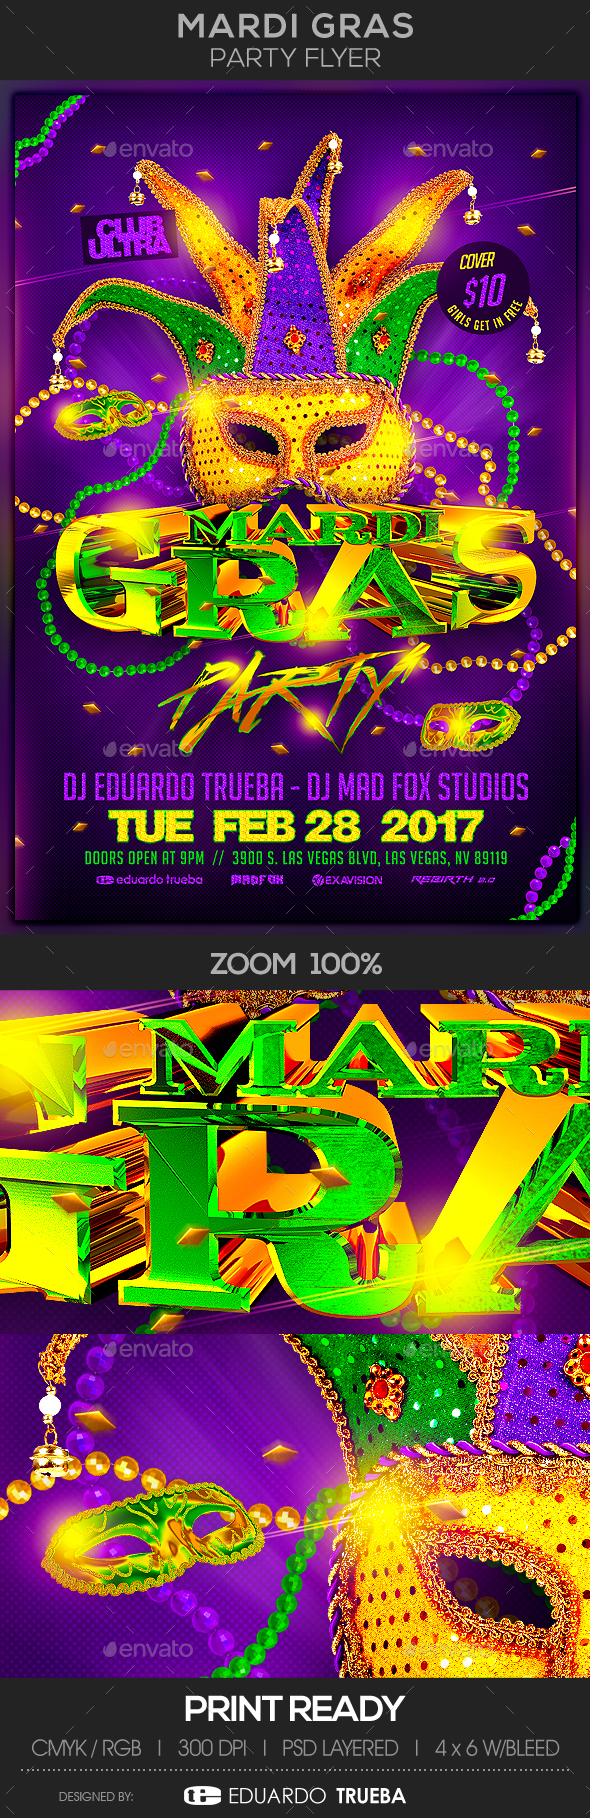 Mardi Gras Party Flyer - Events Flyers